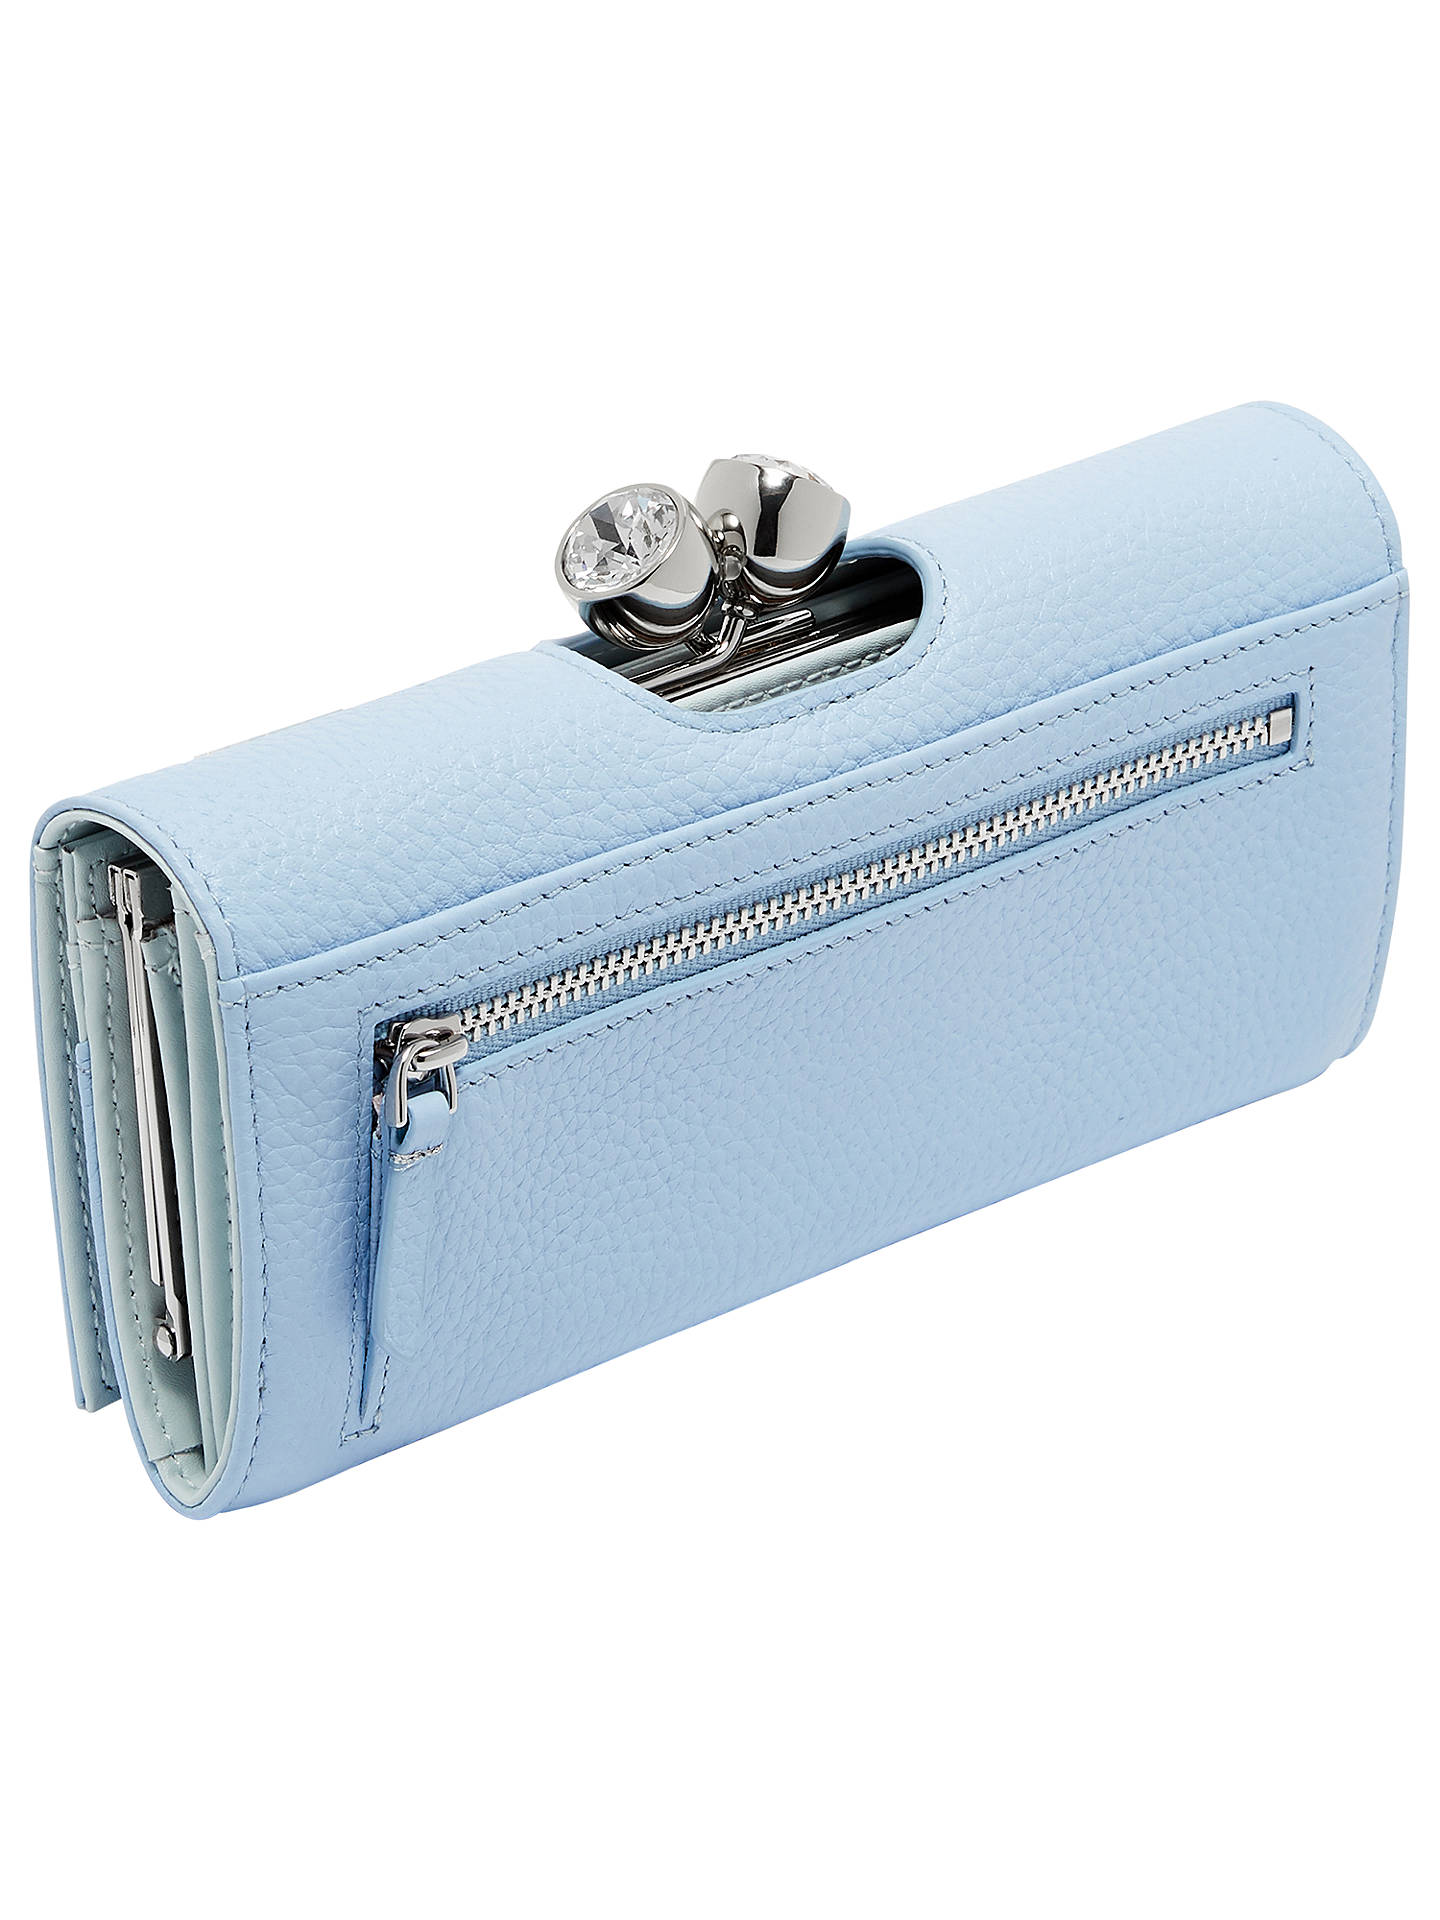 3a3ac1015a ... Buy Ted Baker Muscovy Leather Matinee Purse, Pale Blue Online at  johnlewis.com ...